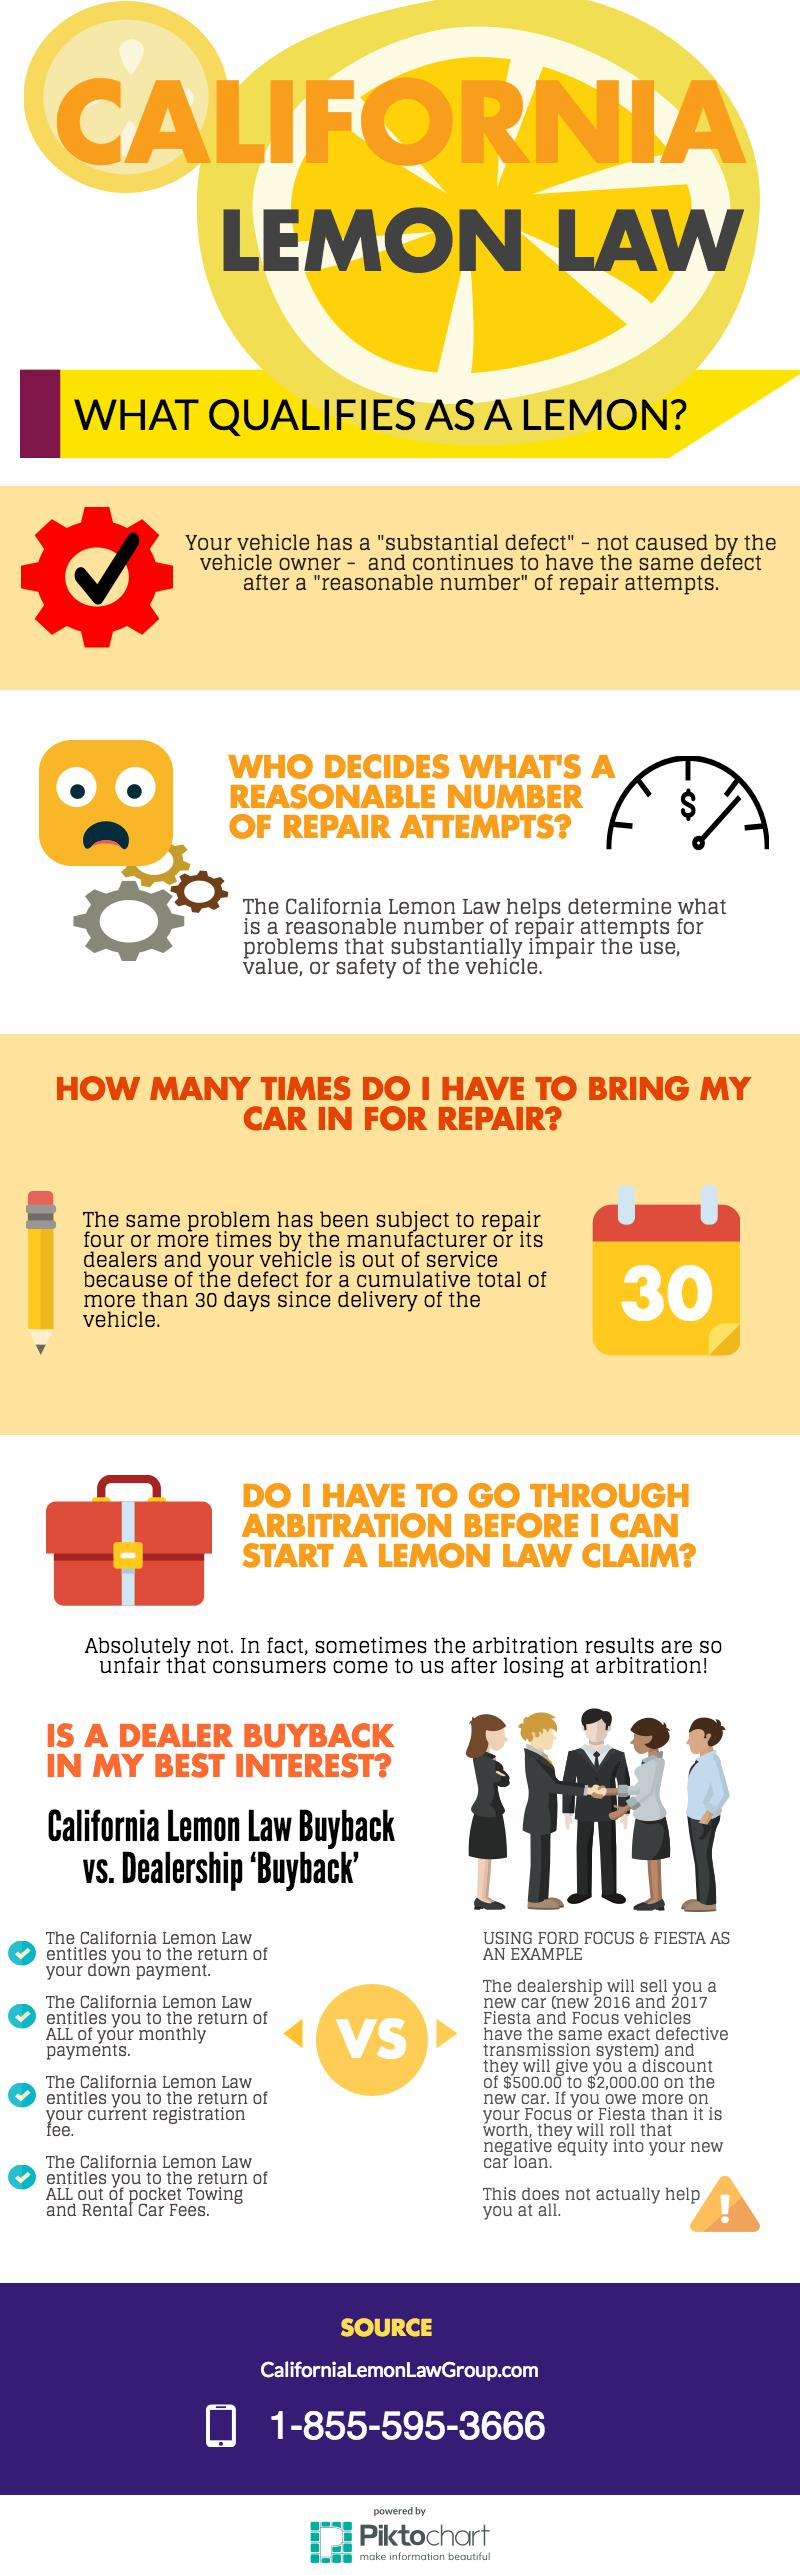 INFOGRAPHIC California Lemon Law